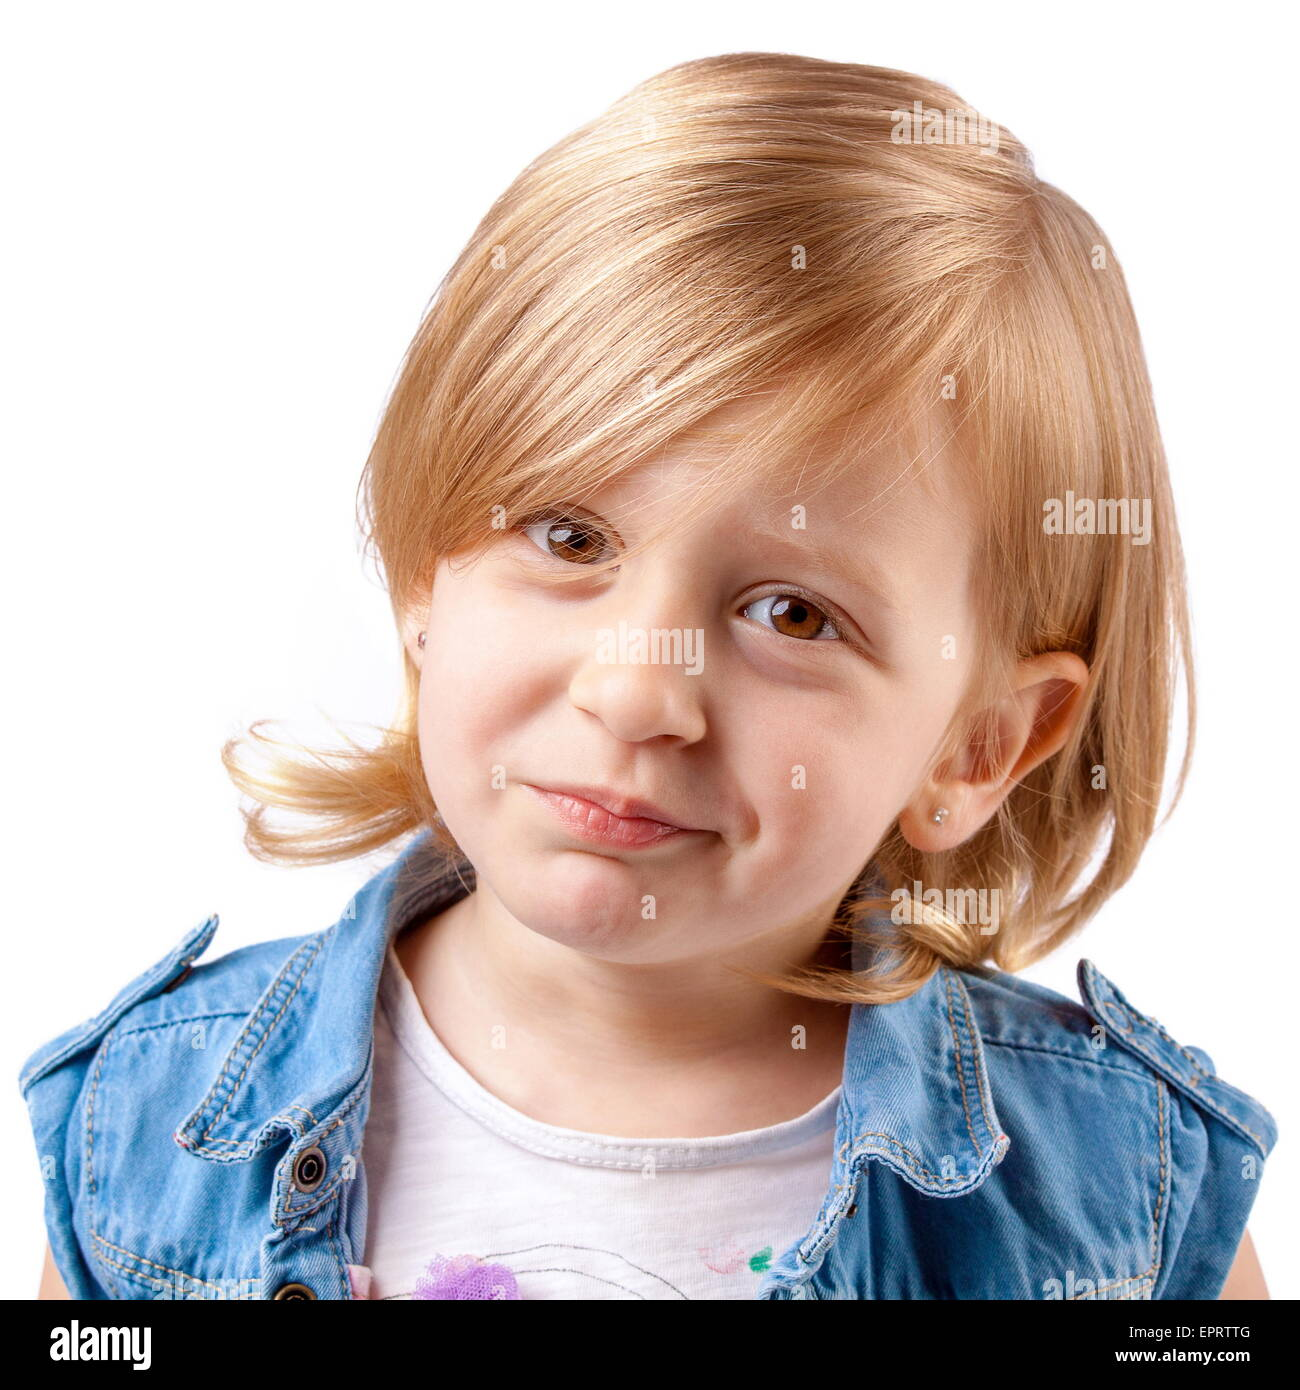 Little cute girl smiling and having fun - Stock Image